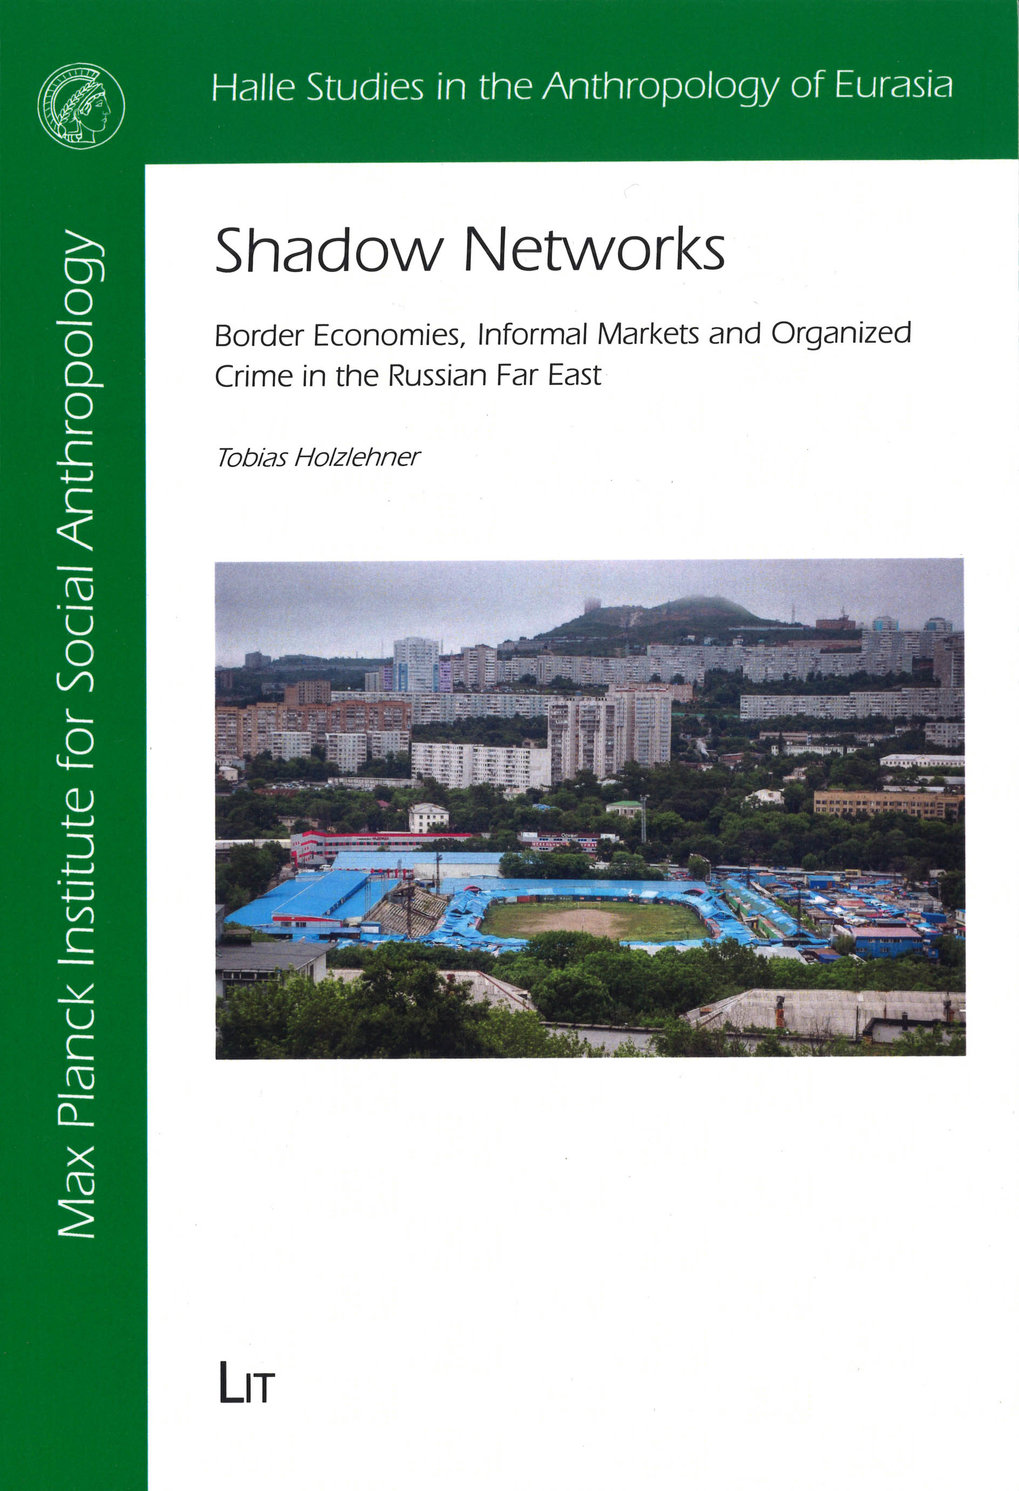 Shadow Networks: border economics, informal markets and organized crime in the Russian Far East